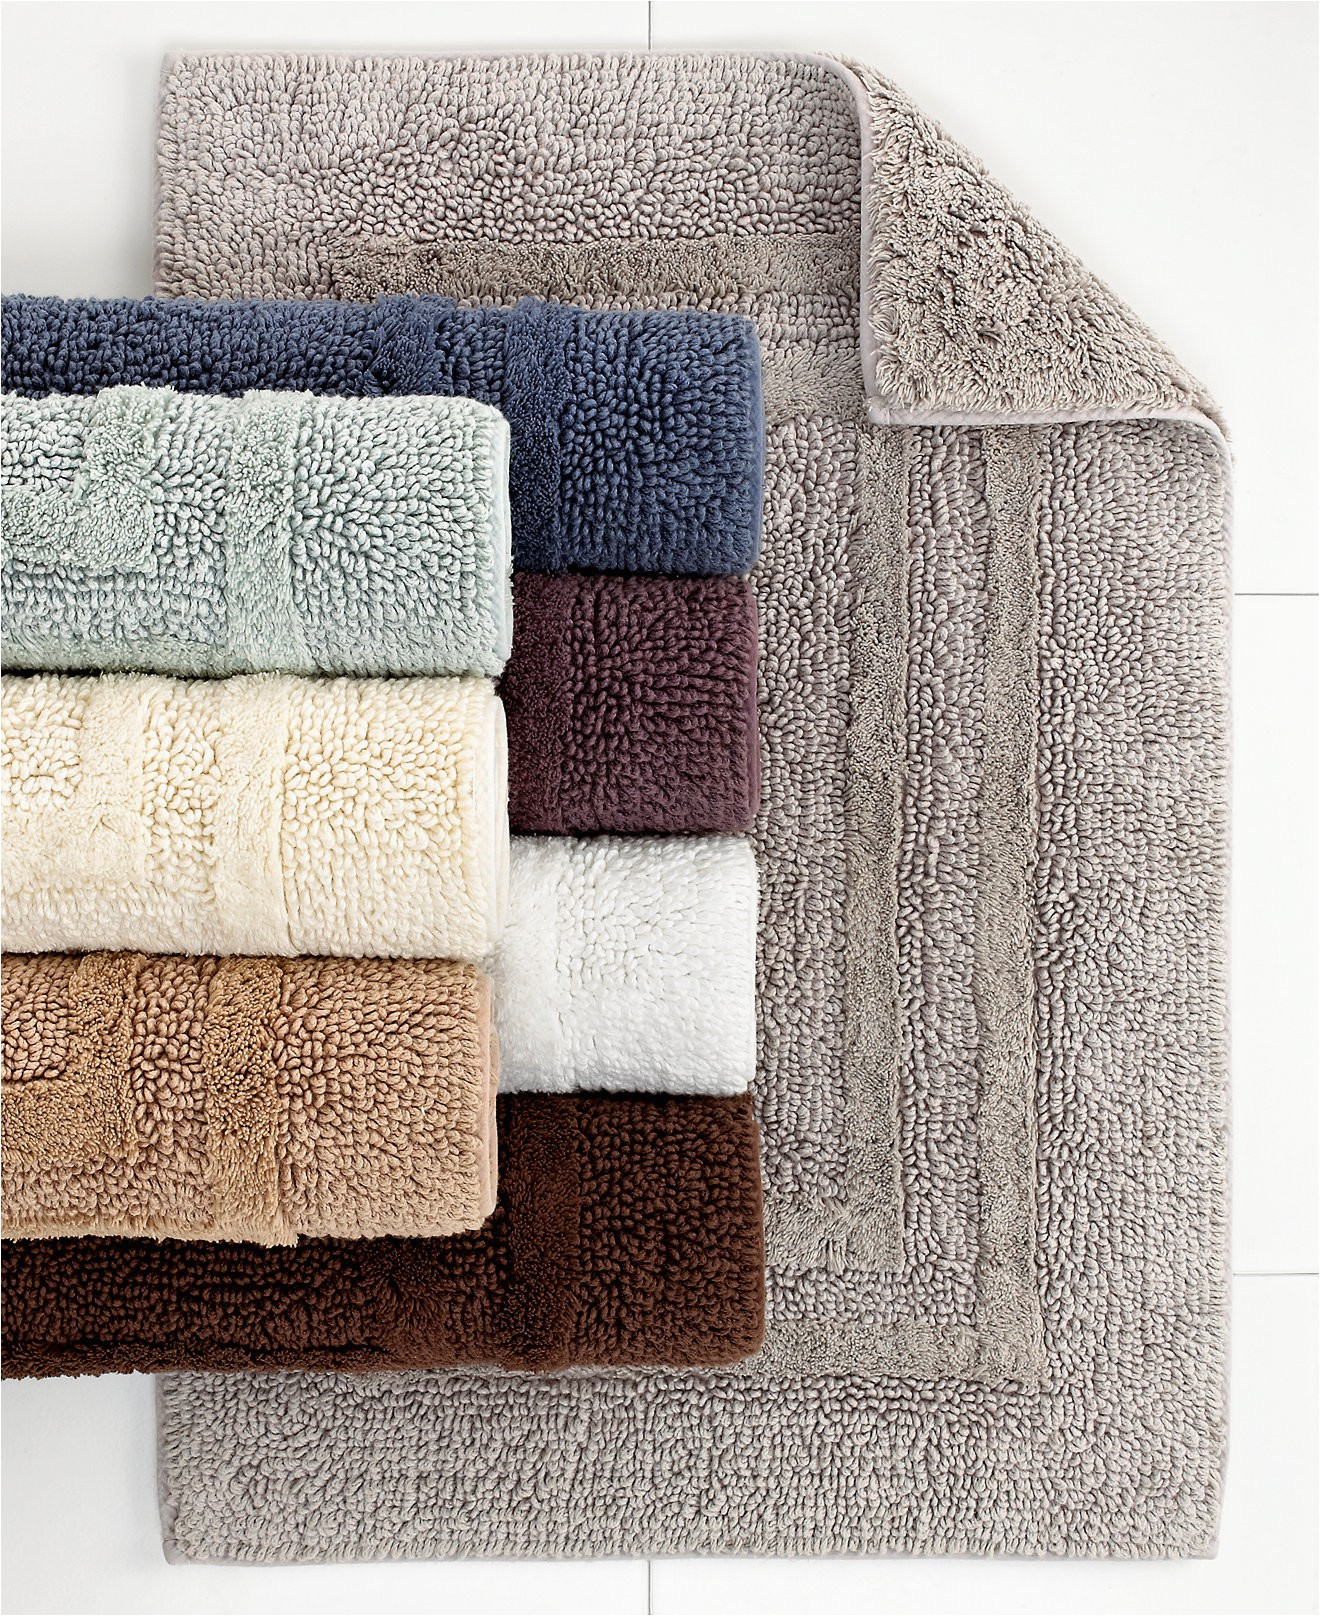 small bathroom rugs and mats bathroom runners mats bath mat anthropologie bath mat bath tub mat memory foam bath mat set ikea bath mat living moss bath mat foam bath mat small bathroom rug